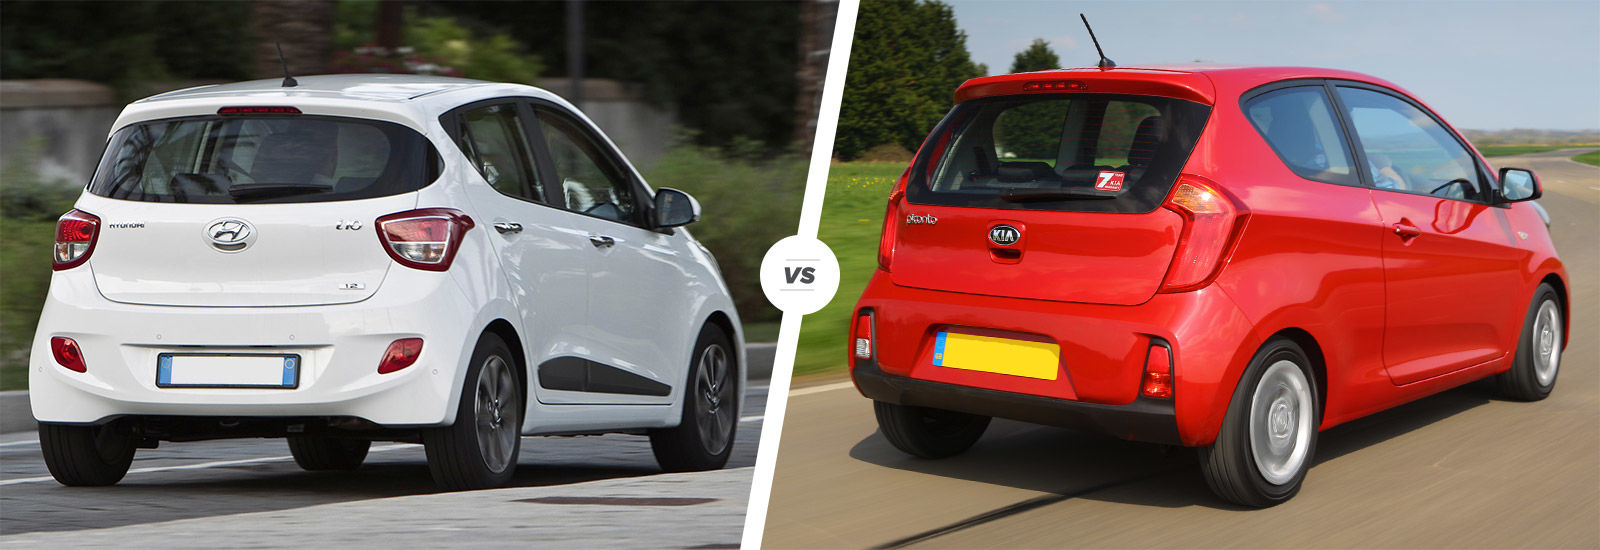 Hyundai I Vs Kia Picanto Value For Money